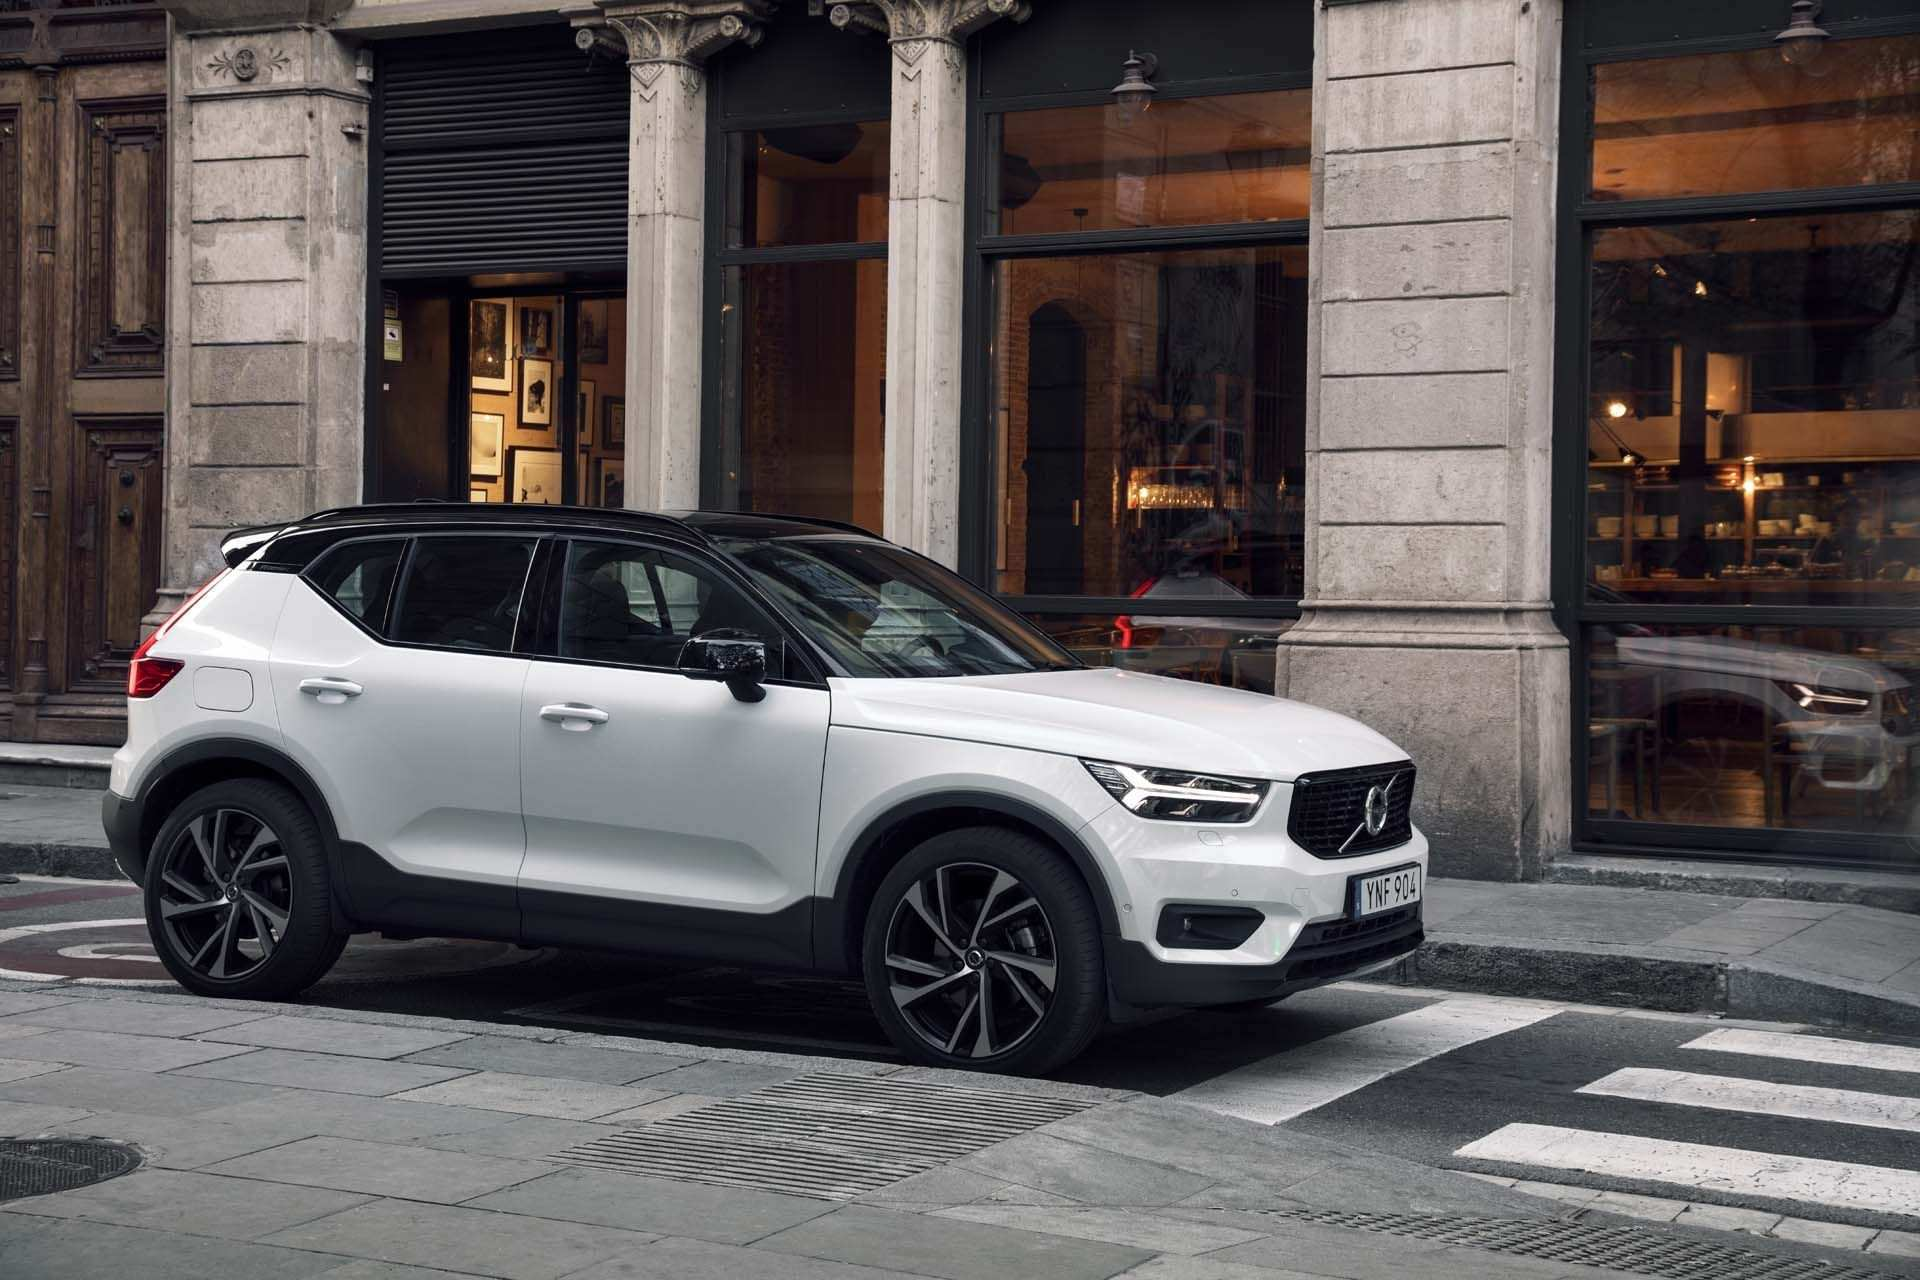 76 Great Volvo Hybrid 2019 Price New Engine Redesign with Volvo Hybrid 2019 Price New Engine